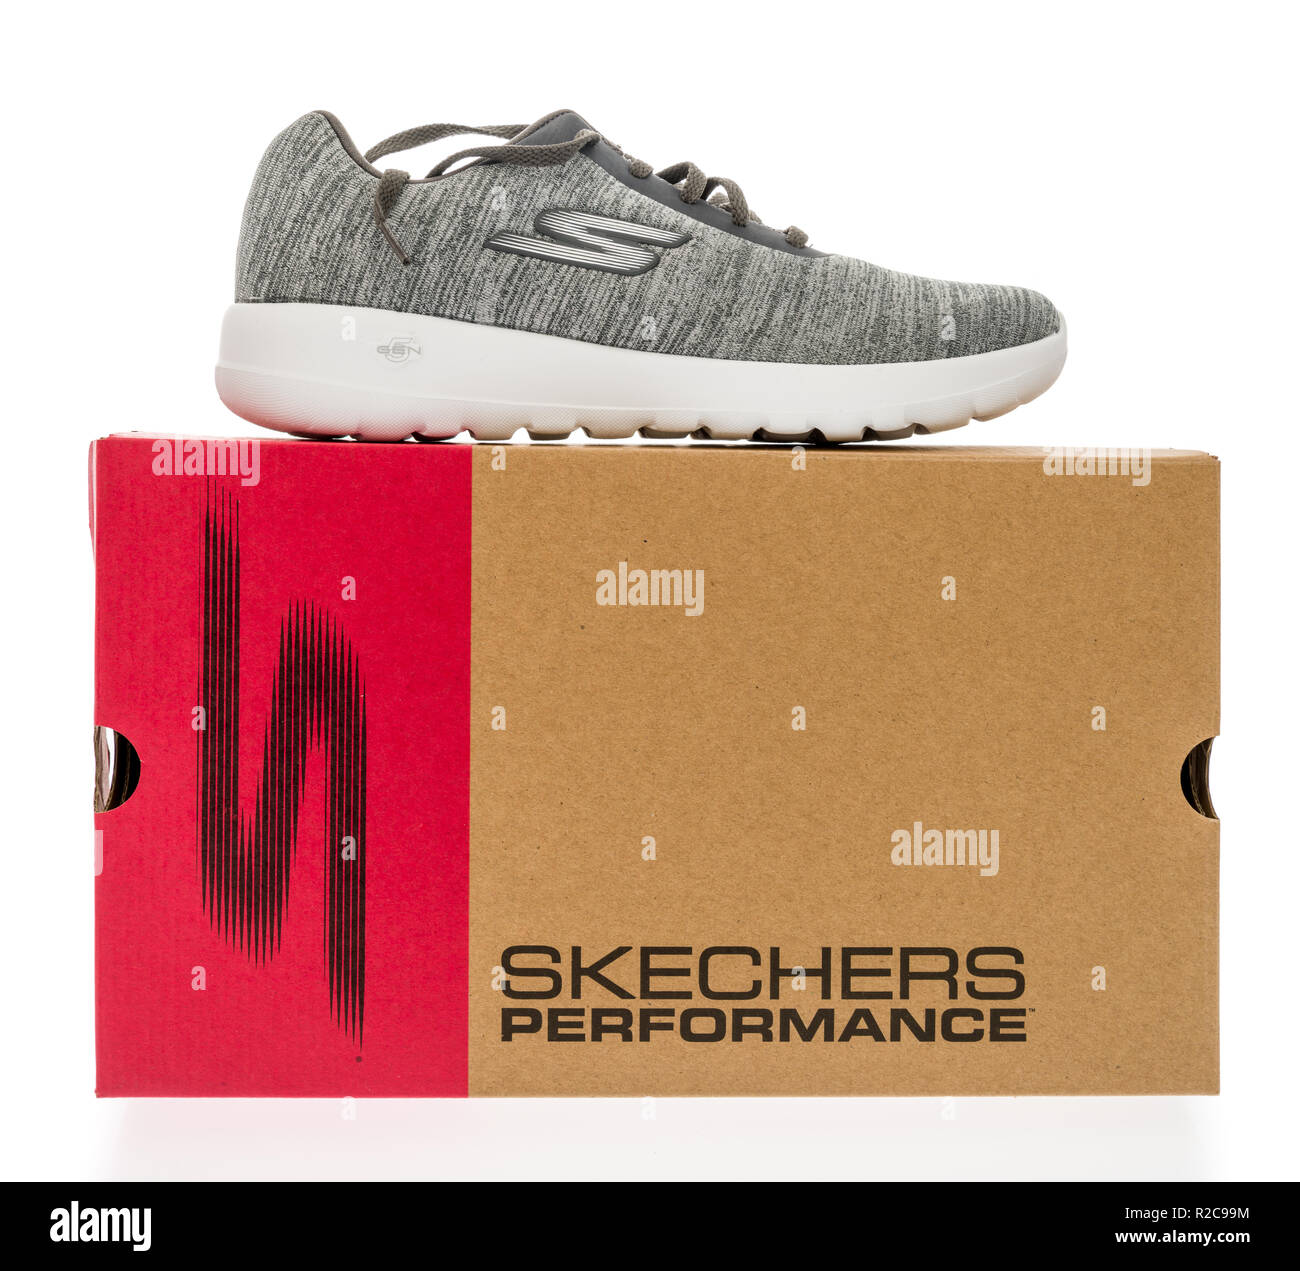 variedad de estilos de 2019 zapatos clasicos selección asombrosa Skechers Shoe High Resolution Stock Photography and Images - Alamy